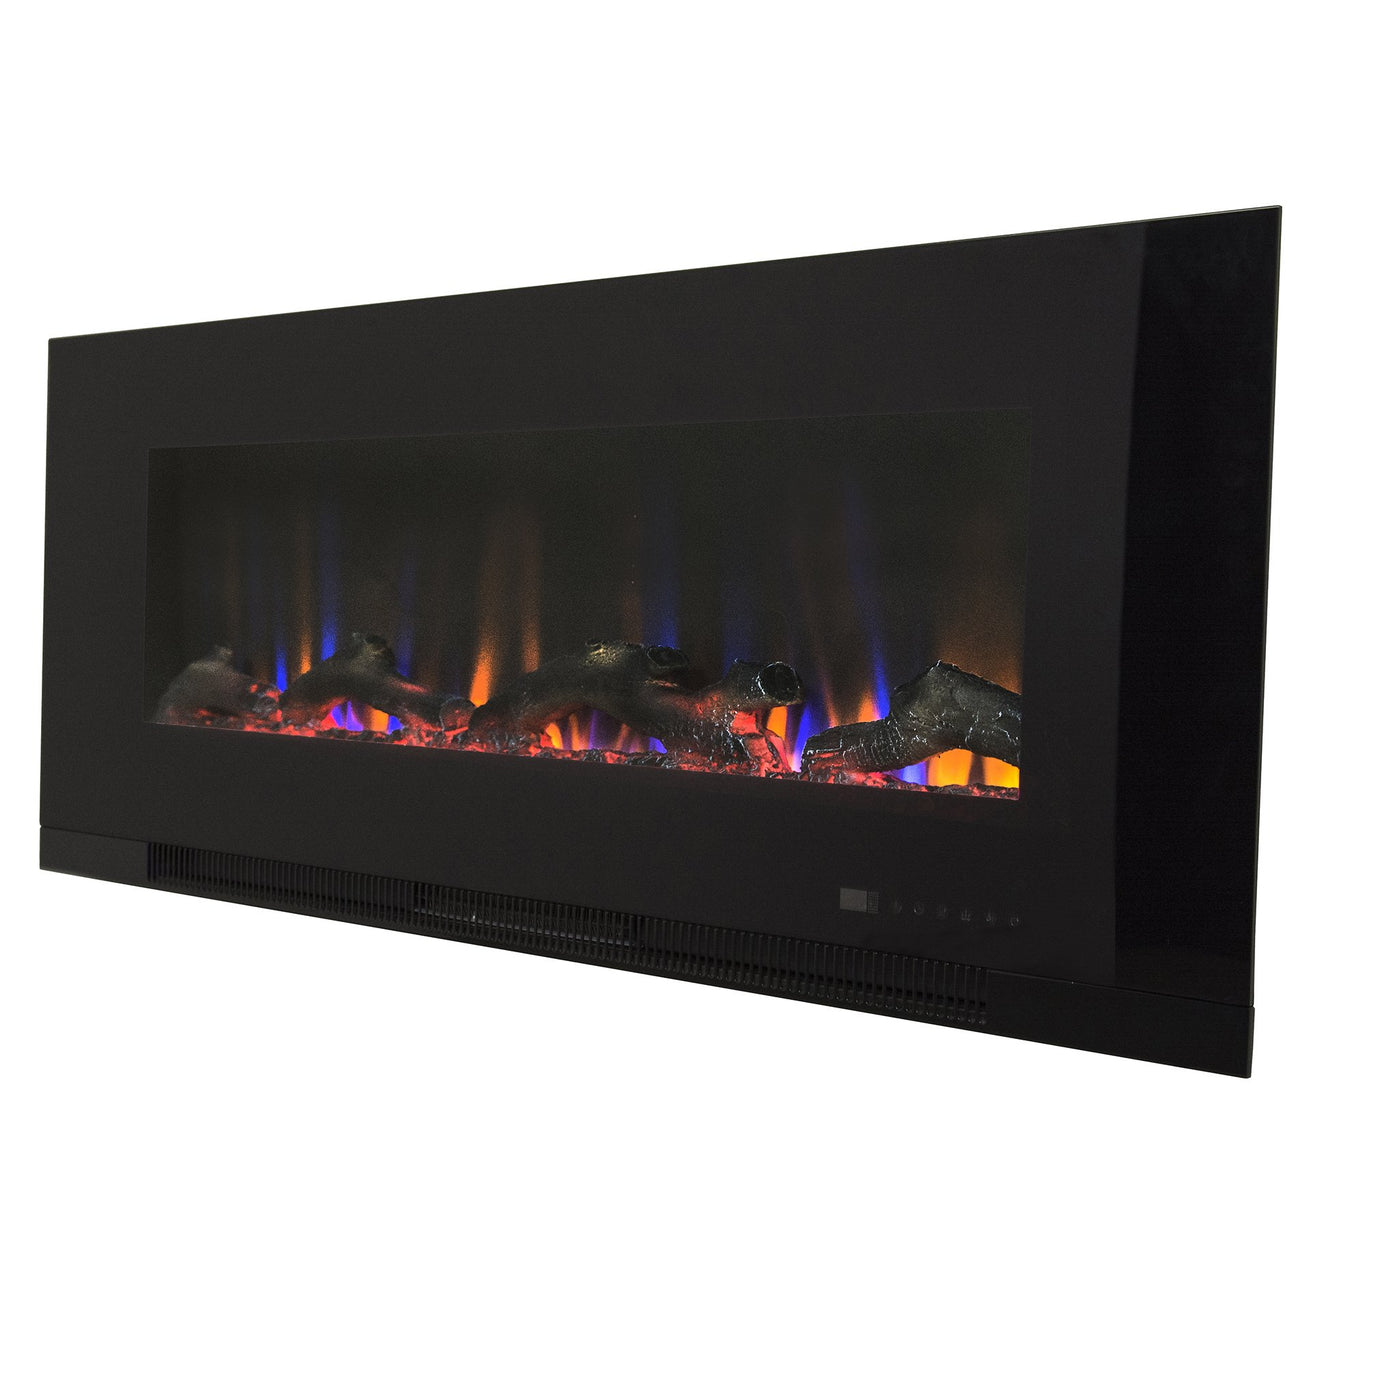 Valueline 50 80031 50 Recessed Electric Fireplace  Touchstone Home